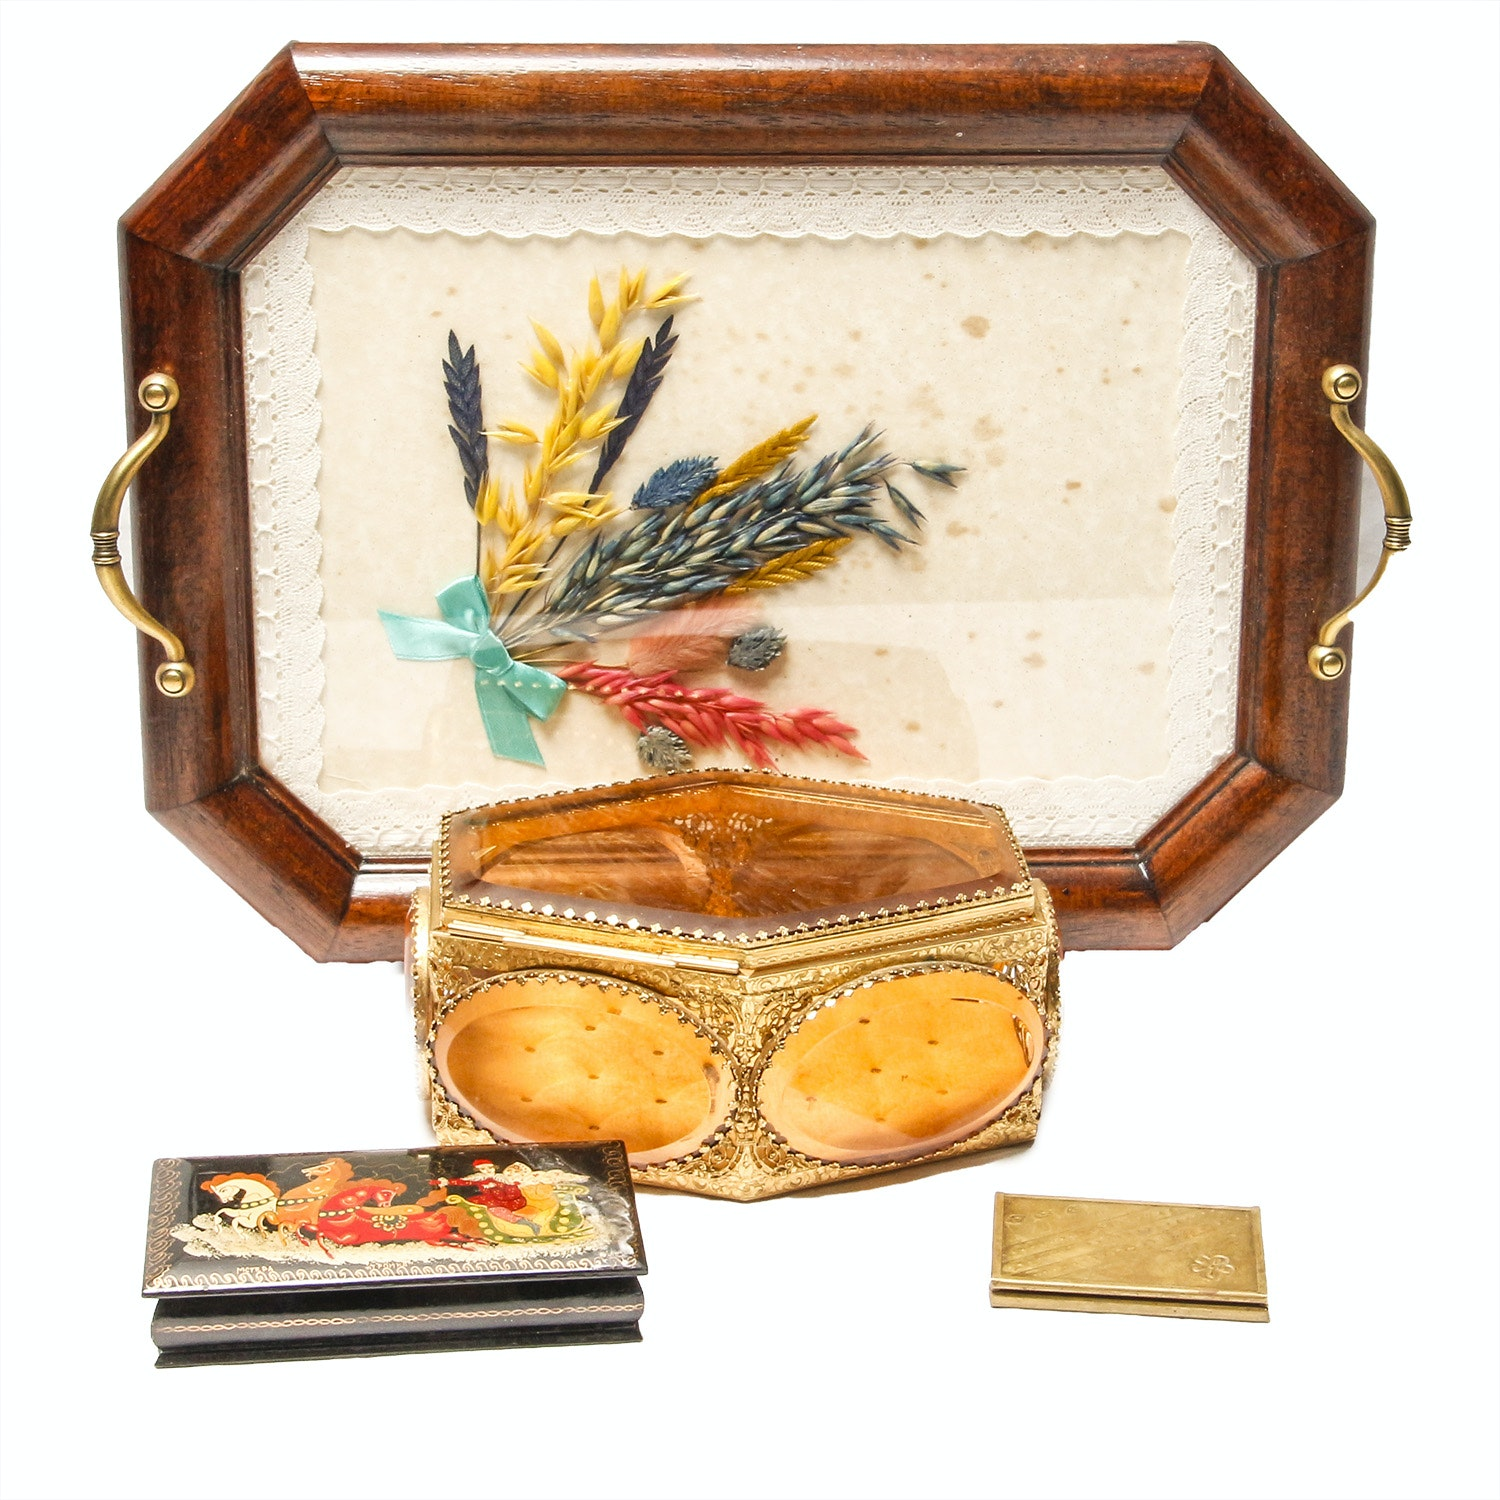 Collection of Vintage Home Decor